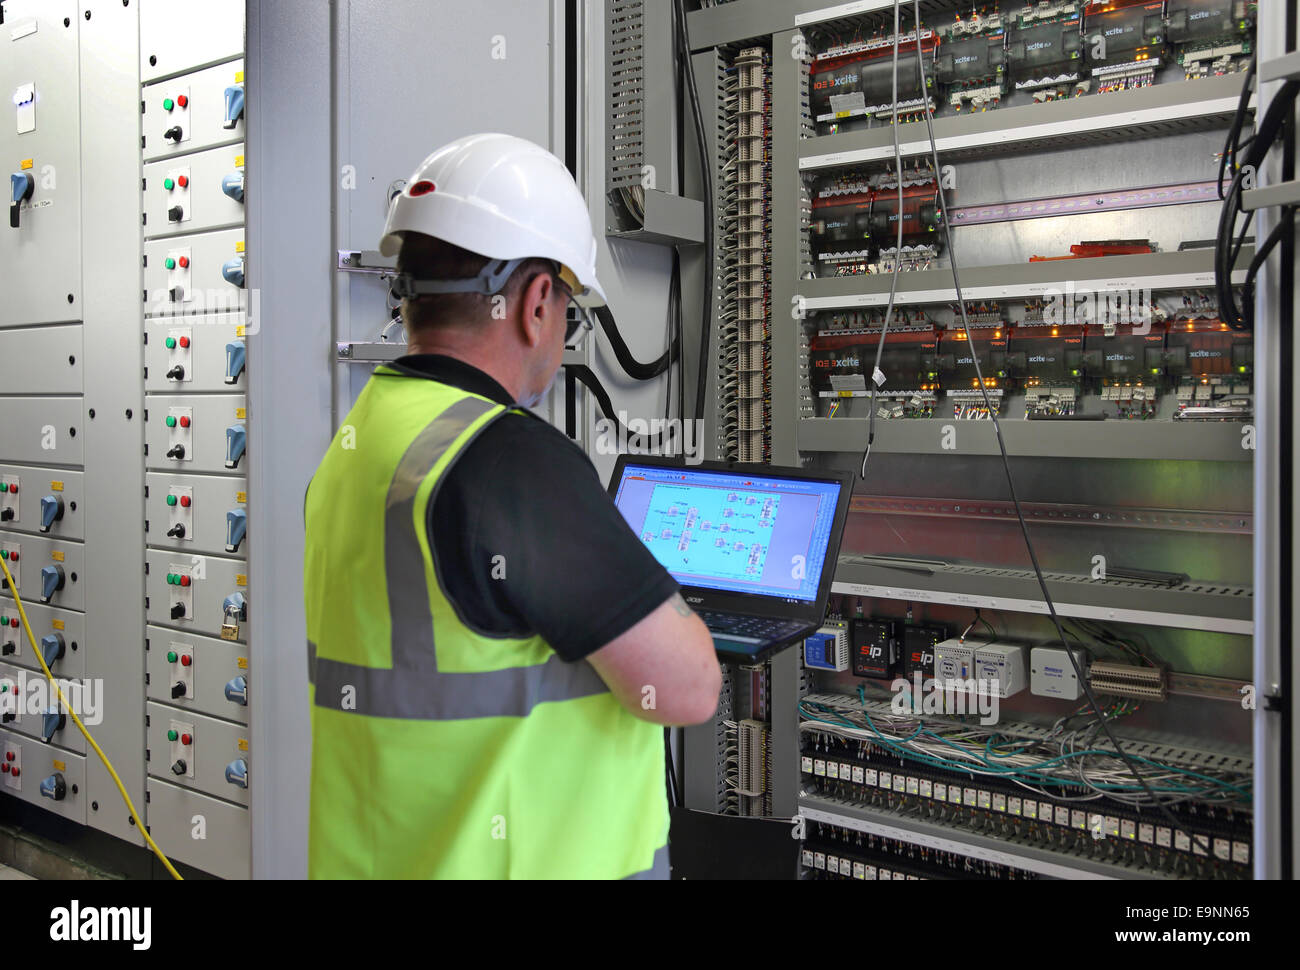 Electrical Engineer Equipment : A building services engineer monitors equipment in an